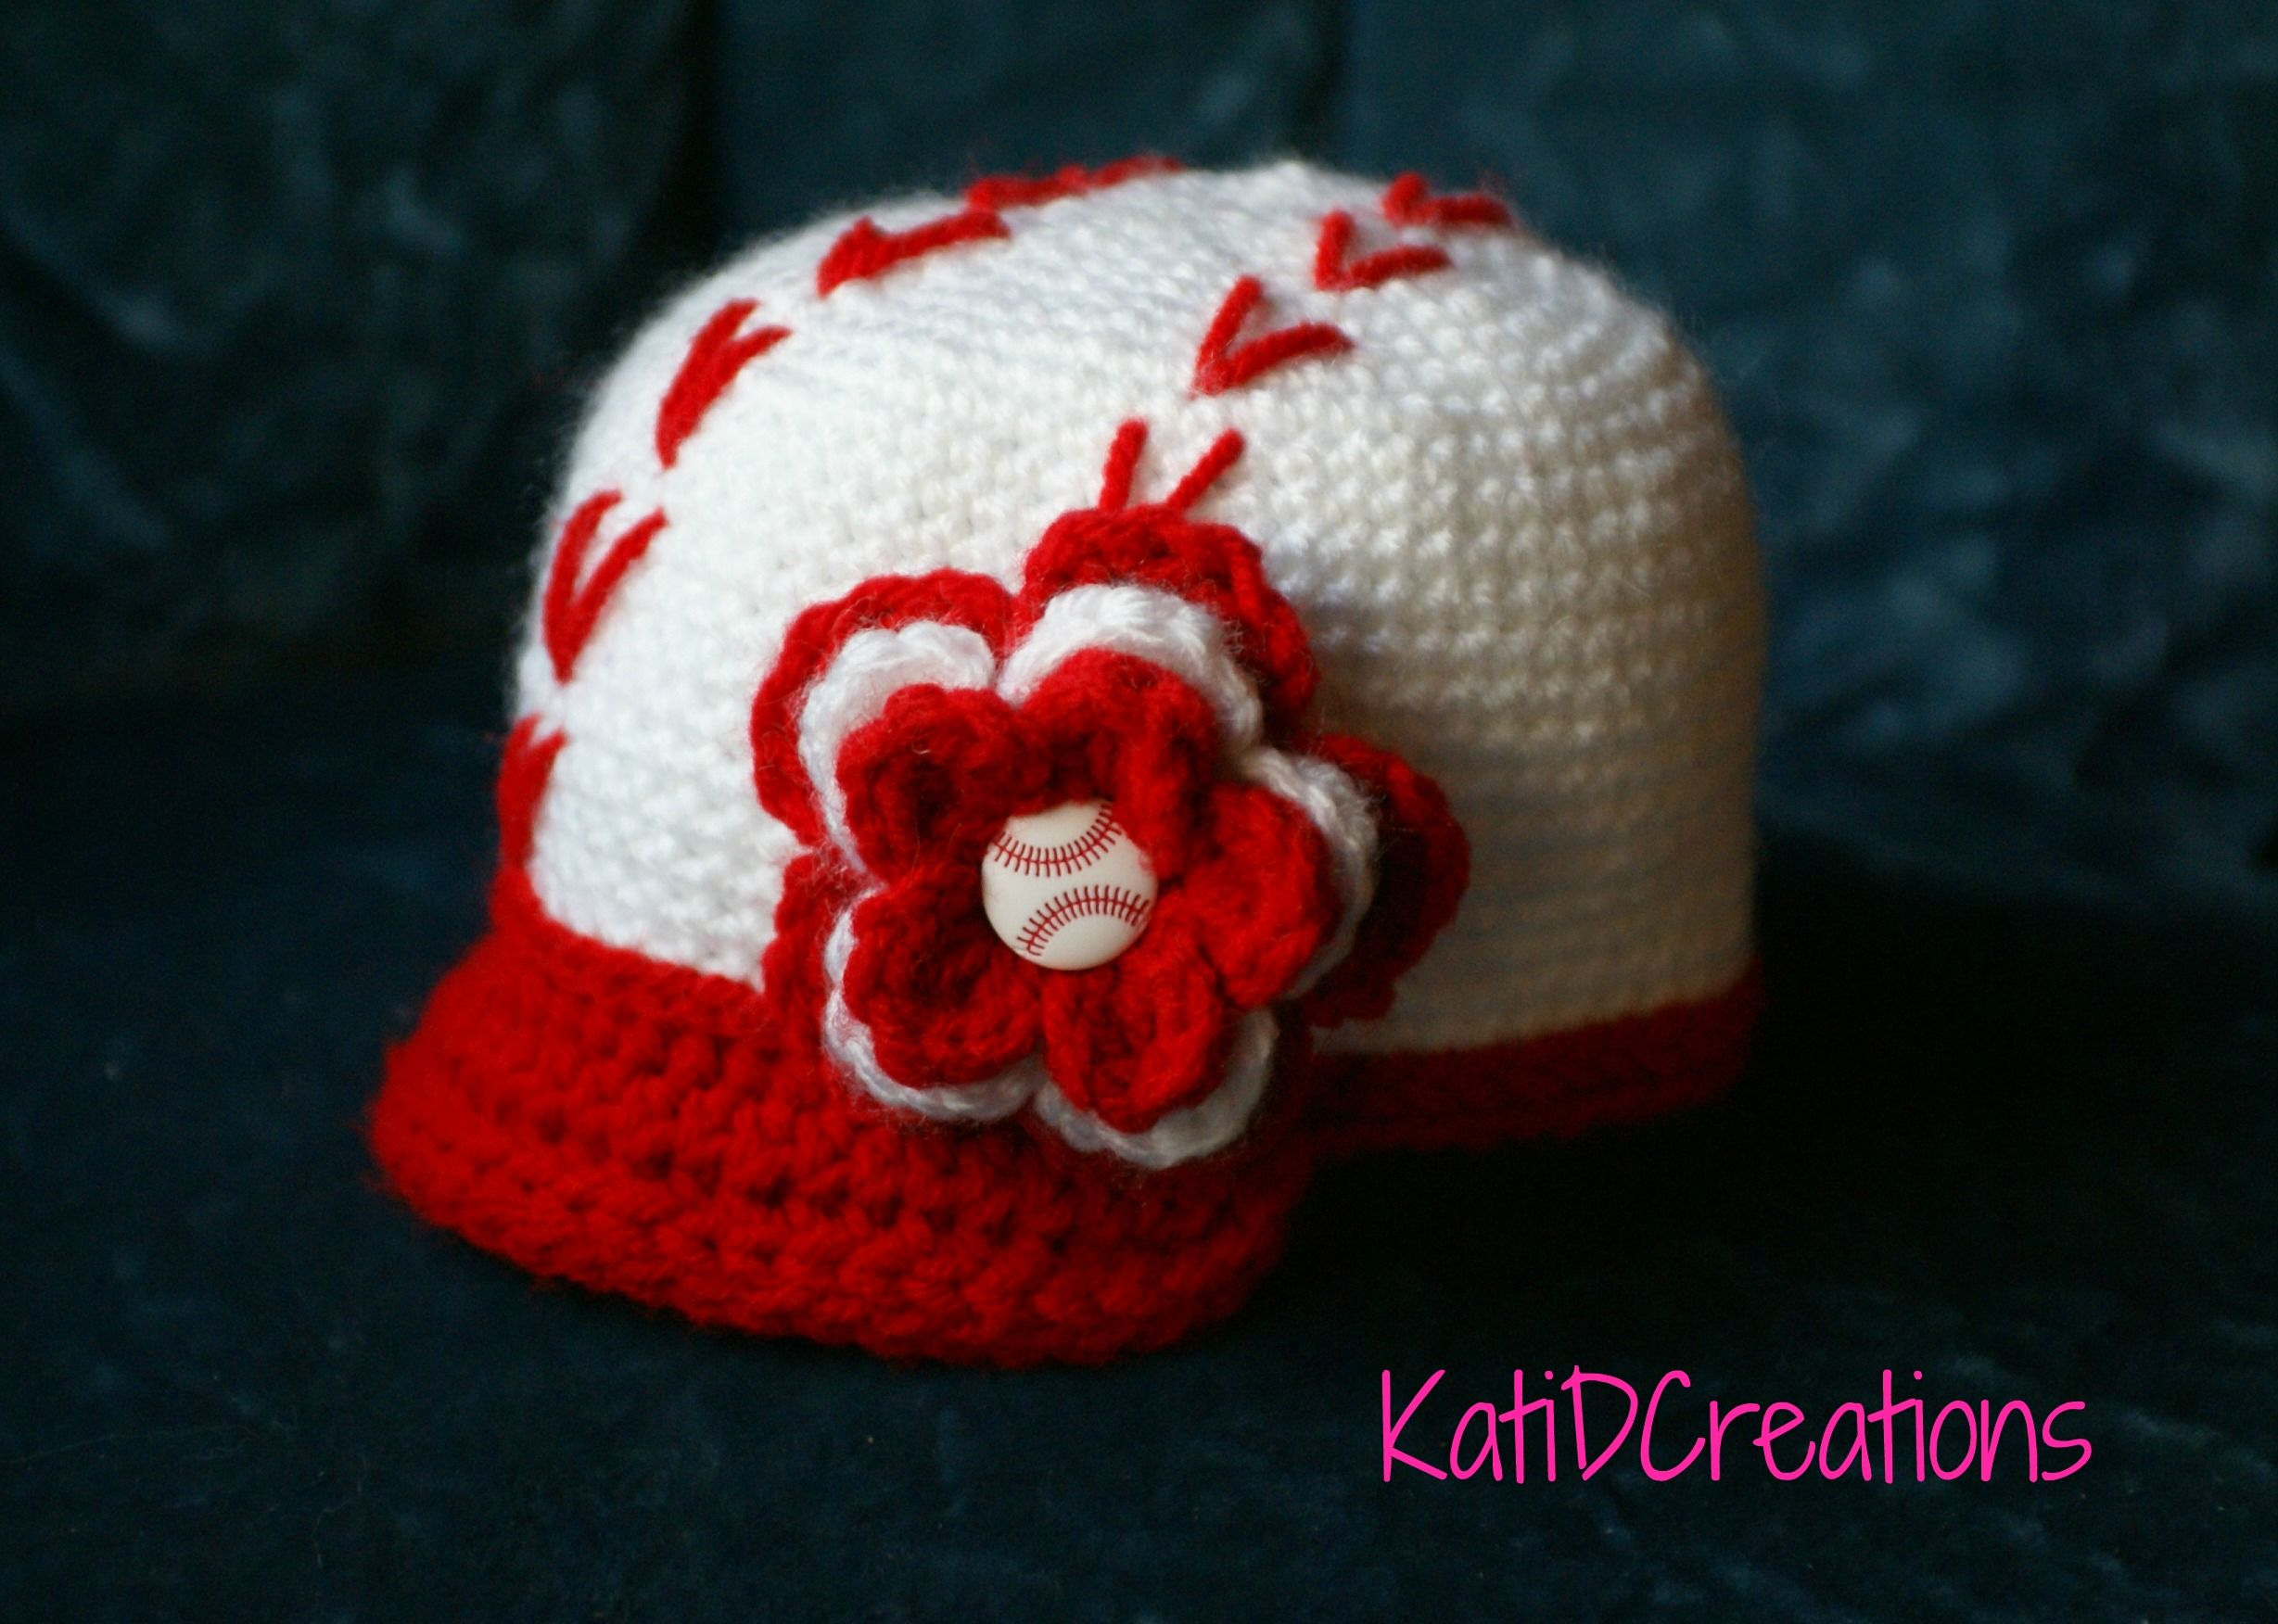 Tutorial adding baseball stitching to a crochet hat by tutorial adding baseball stitching to a crochet hat by katidcreations bankloansurffo Gallery